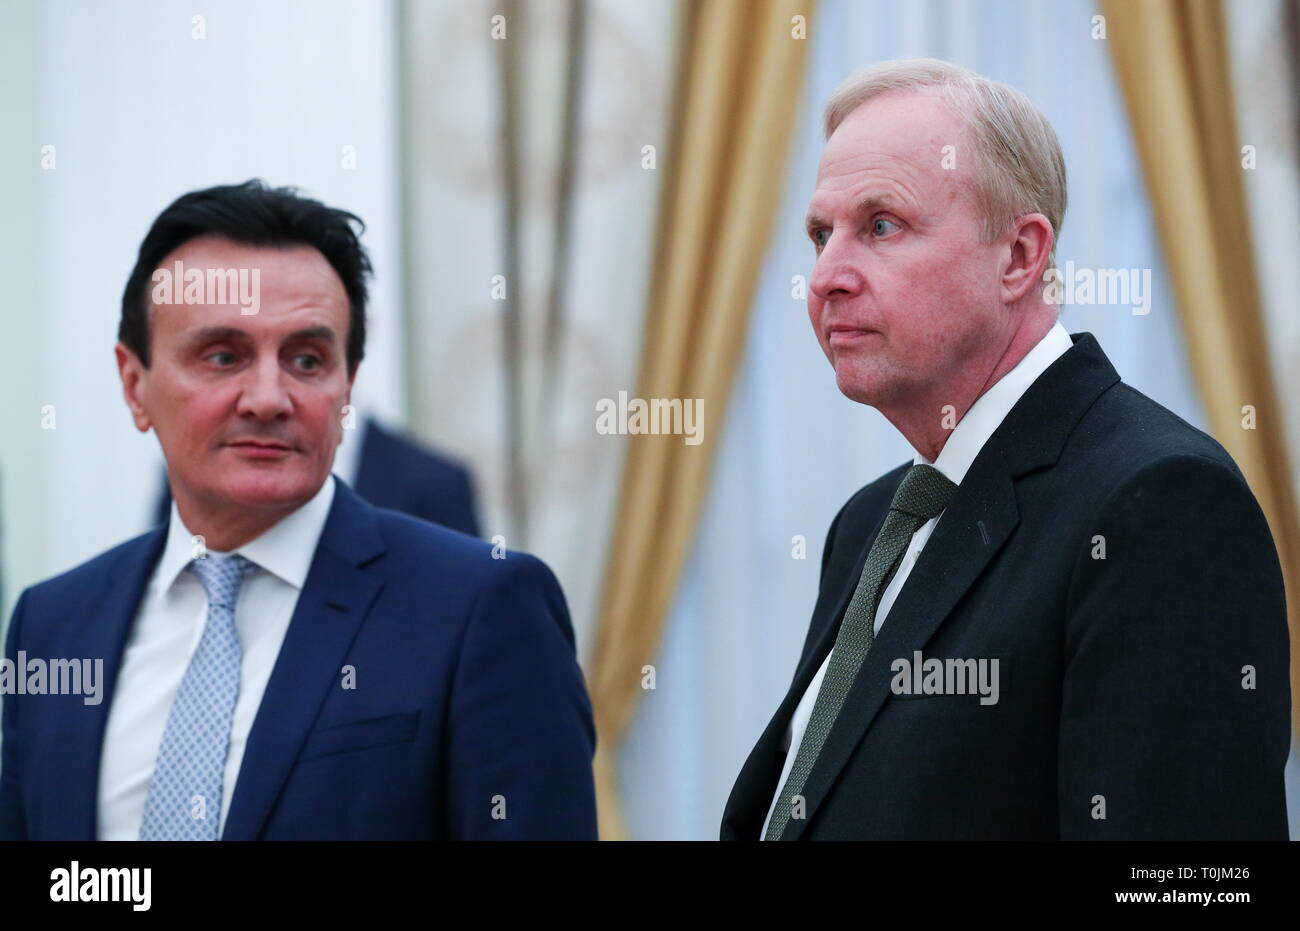 Moscow, Russia. 20th Mar, 2019. MOSCOW, RUSSIA - MARCH 20, 2019: AstraZeneca CEO Pascal Soriot (L) and BP Chief Executive Robert Dudley ahead of a meeting between other British businessmen and Russia's President Vladimir Putin at the Moscow Kremlin. Mikhail Tereshchenko/TASS Credit: ITAR-TASS News Agency/Alamy Live News - Stock Image